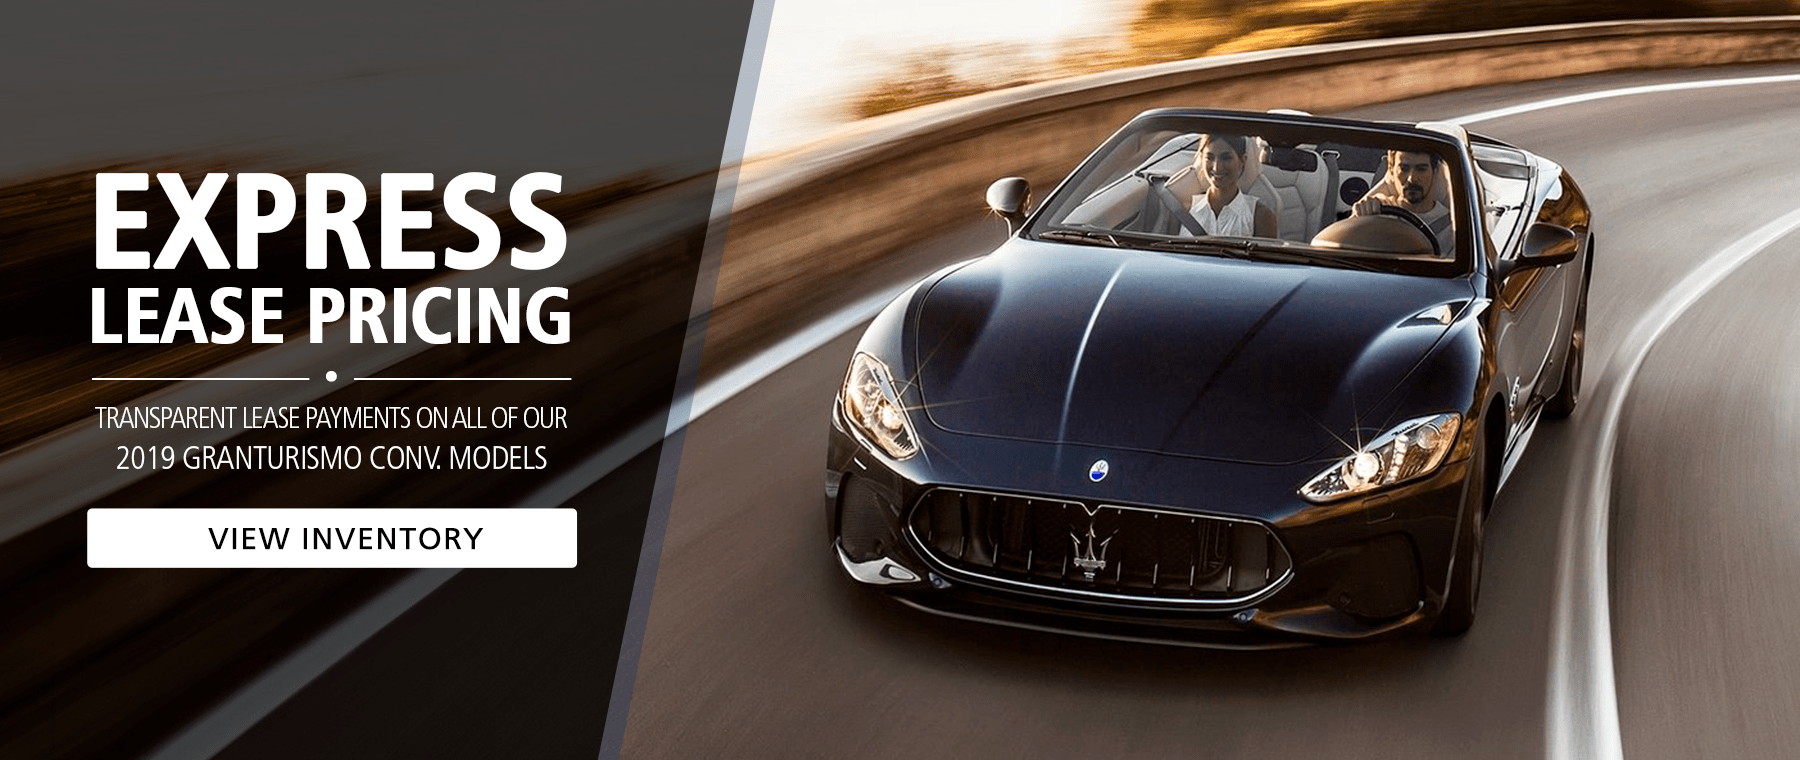 Special Lease Pricing - Maserati GranTurismo